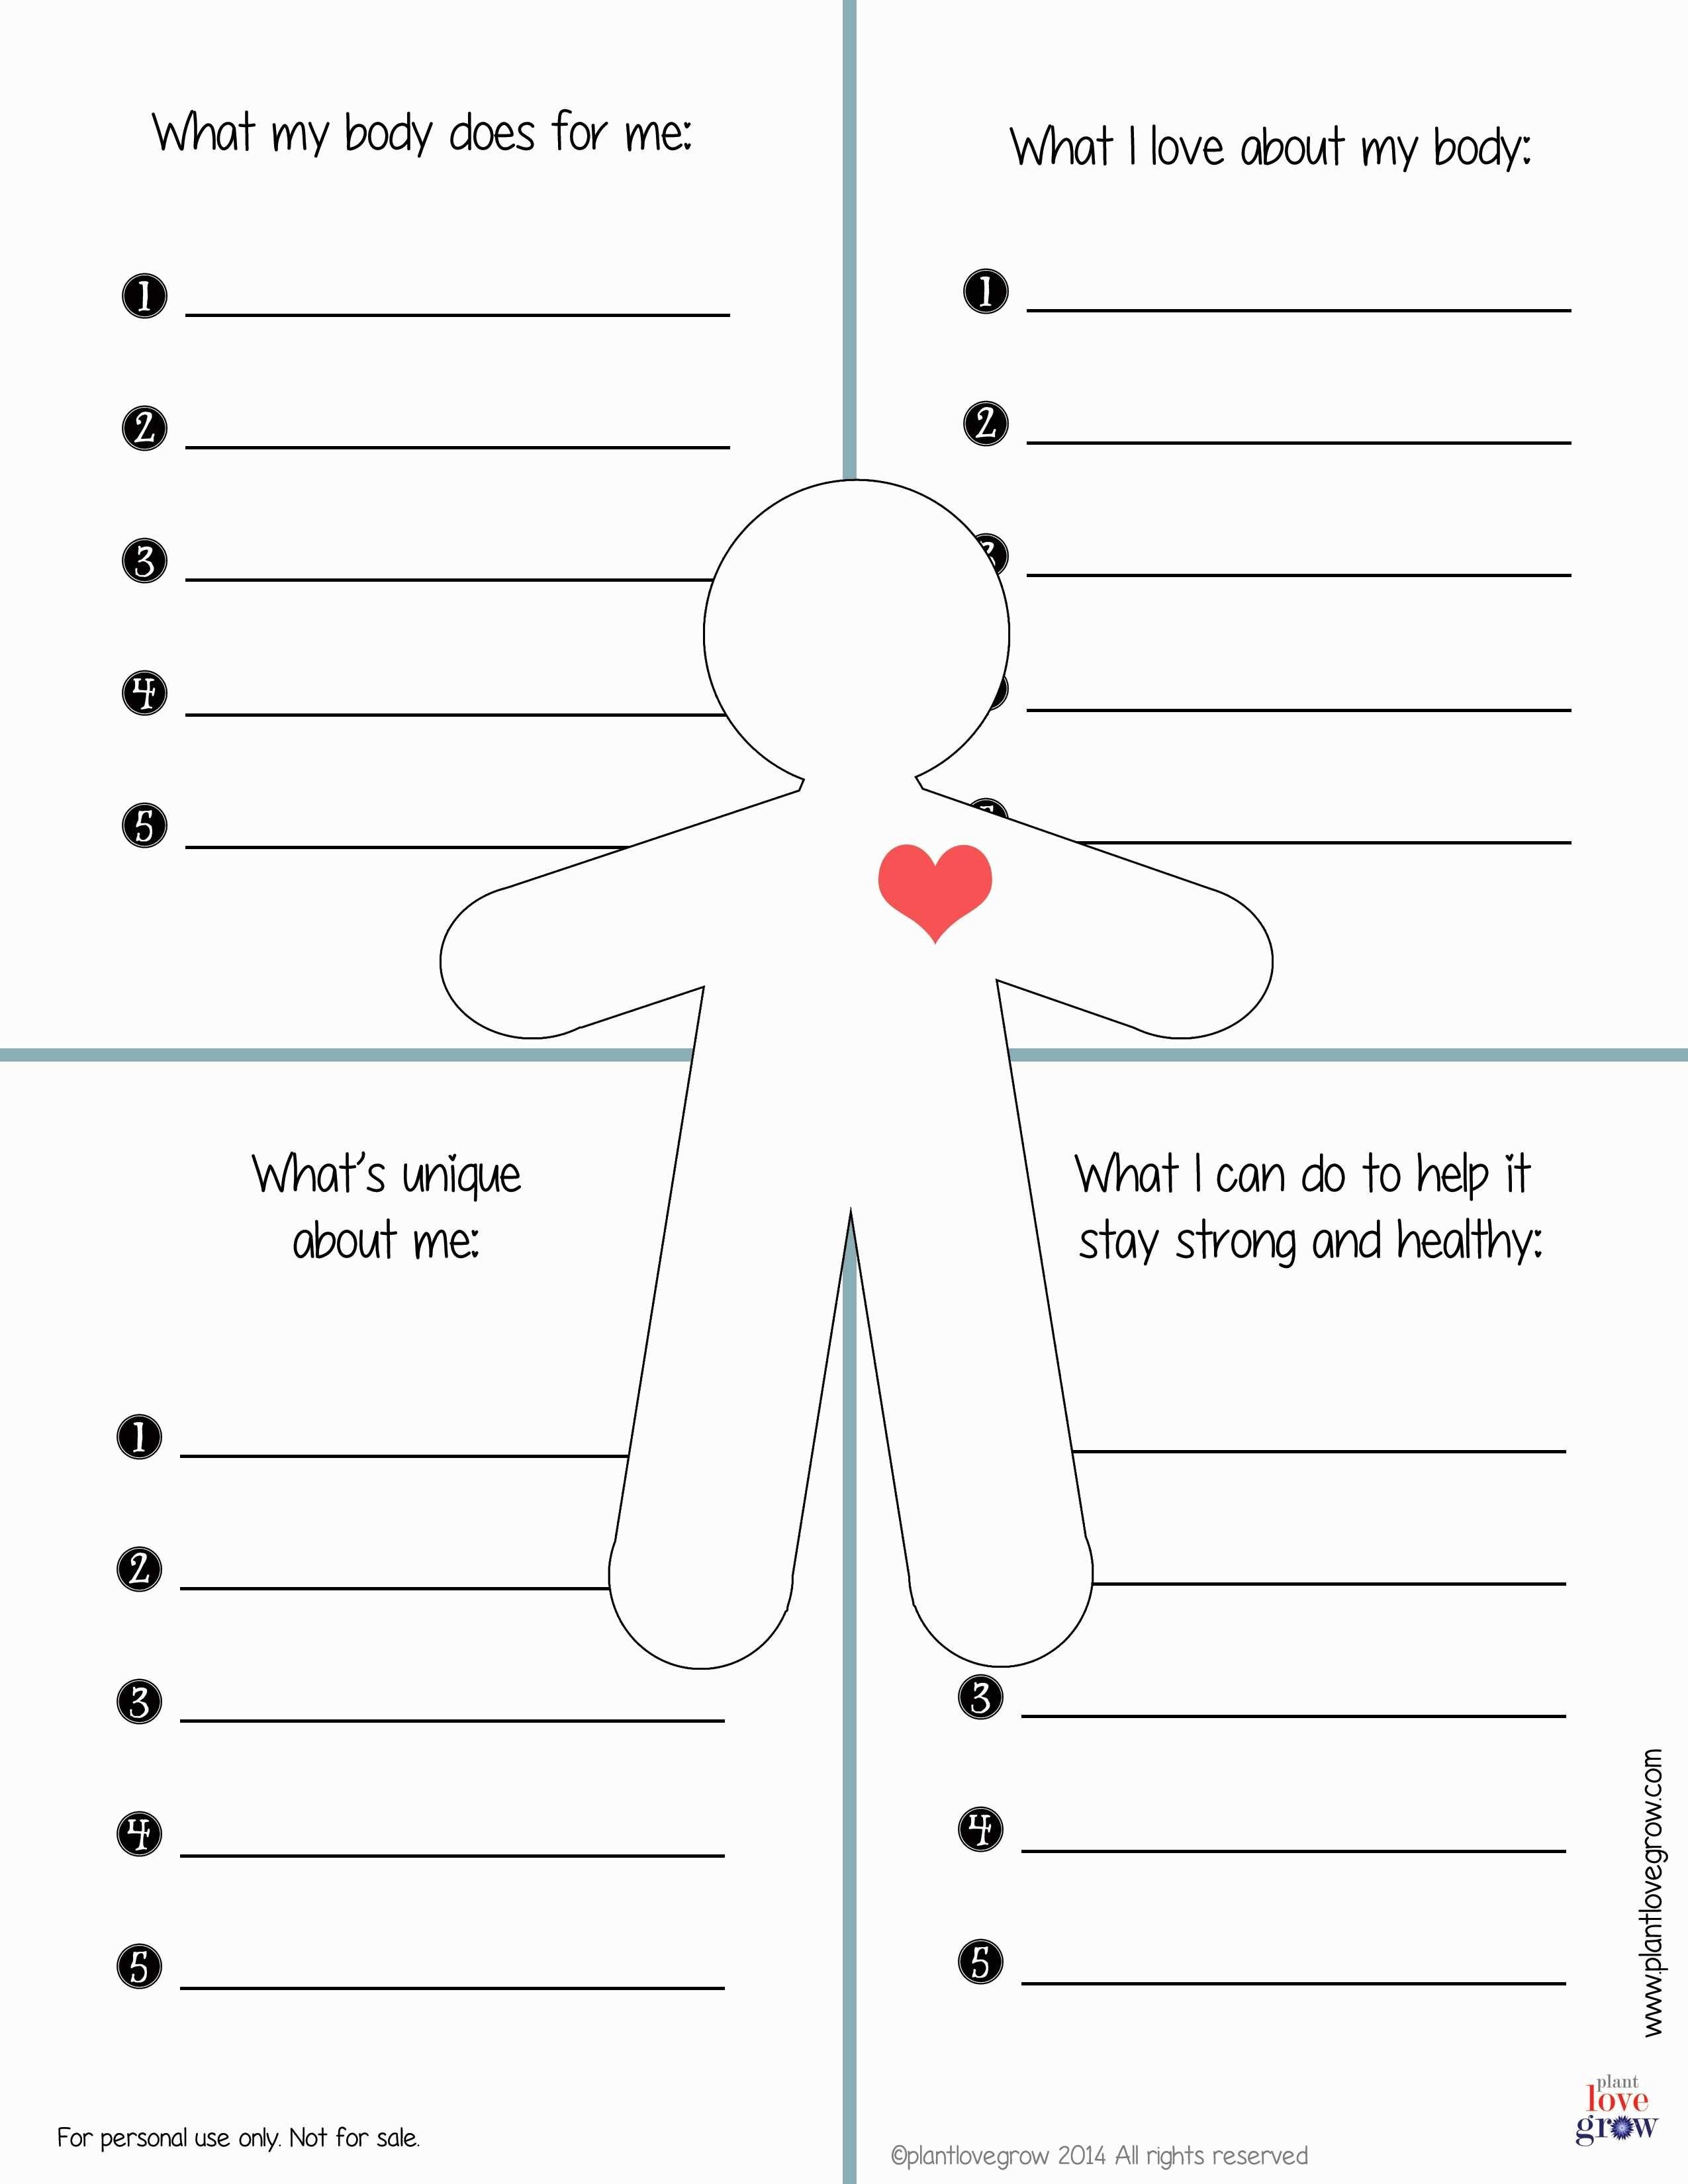 30 Self Esteem Worksheets To Print  Kittybabylove For Self Esteem And Self Worth Worksheets